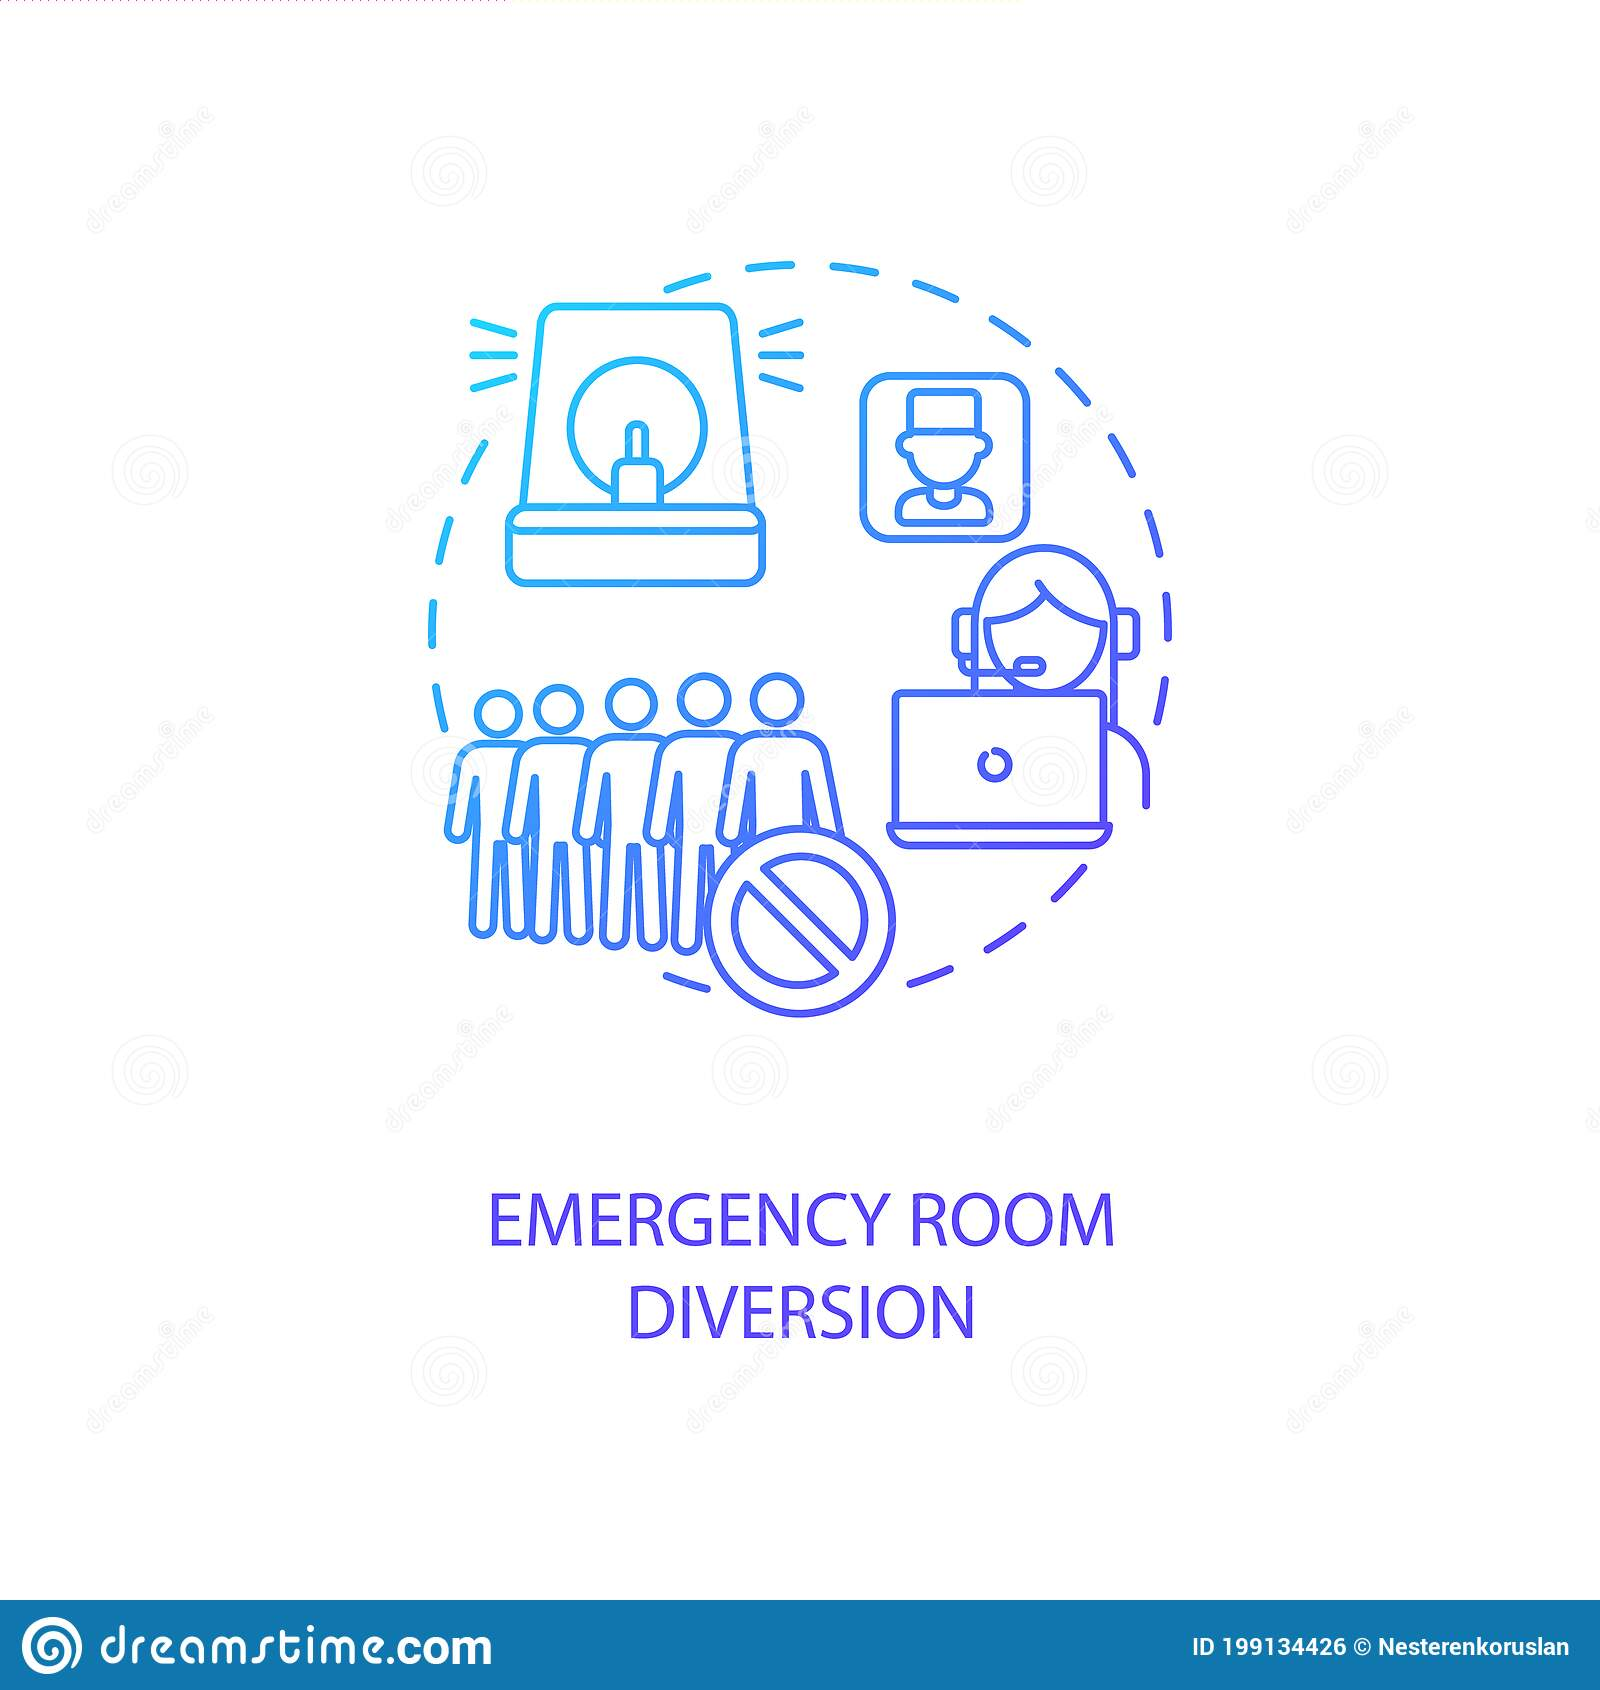 Emergency Room Diversion Concept Icon Stock Vector Illustration Of Drawing Healthcare 199134426